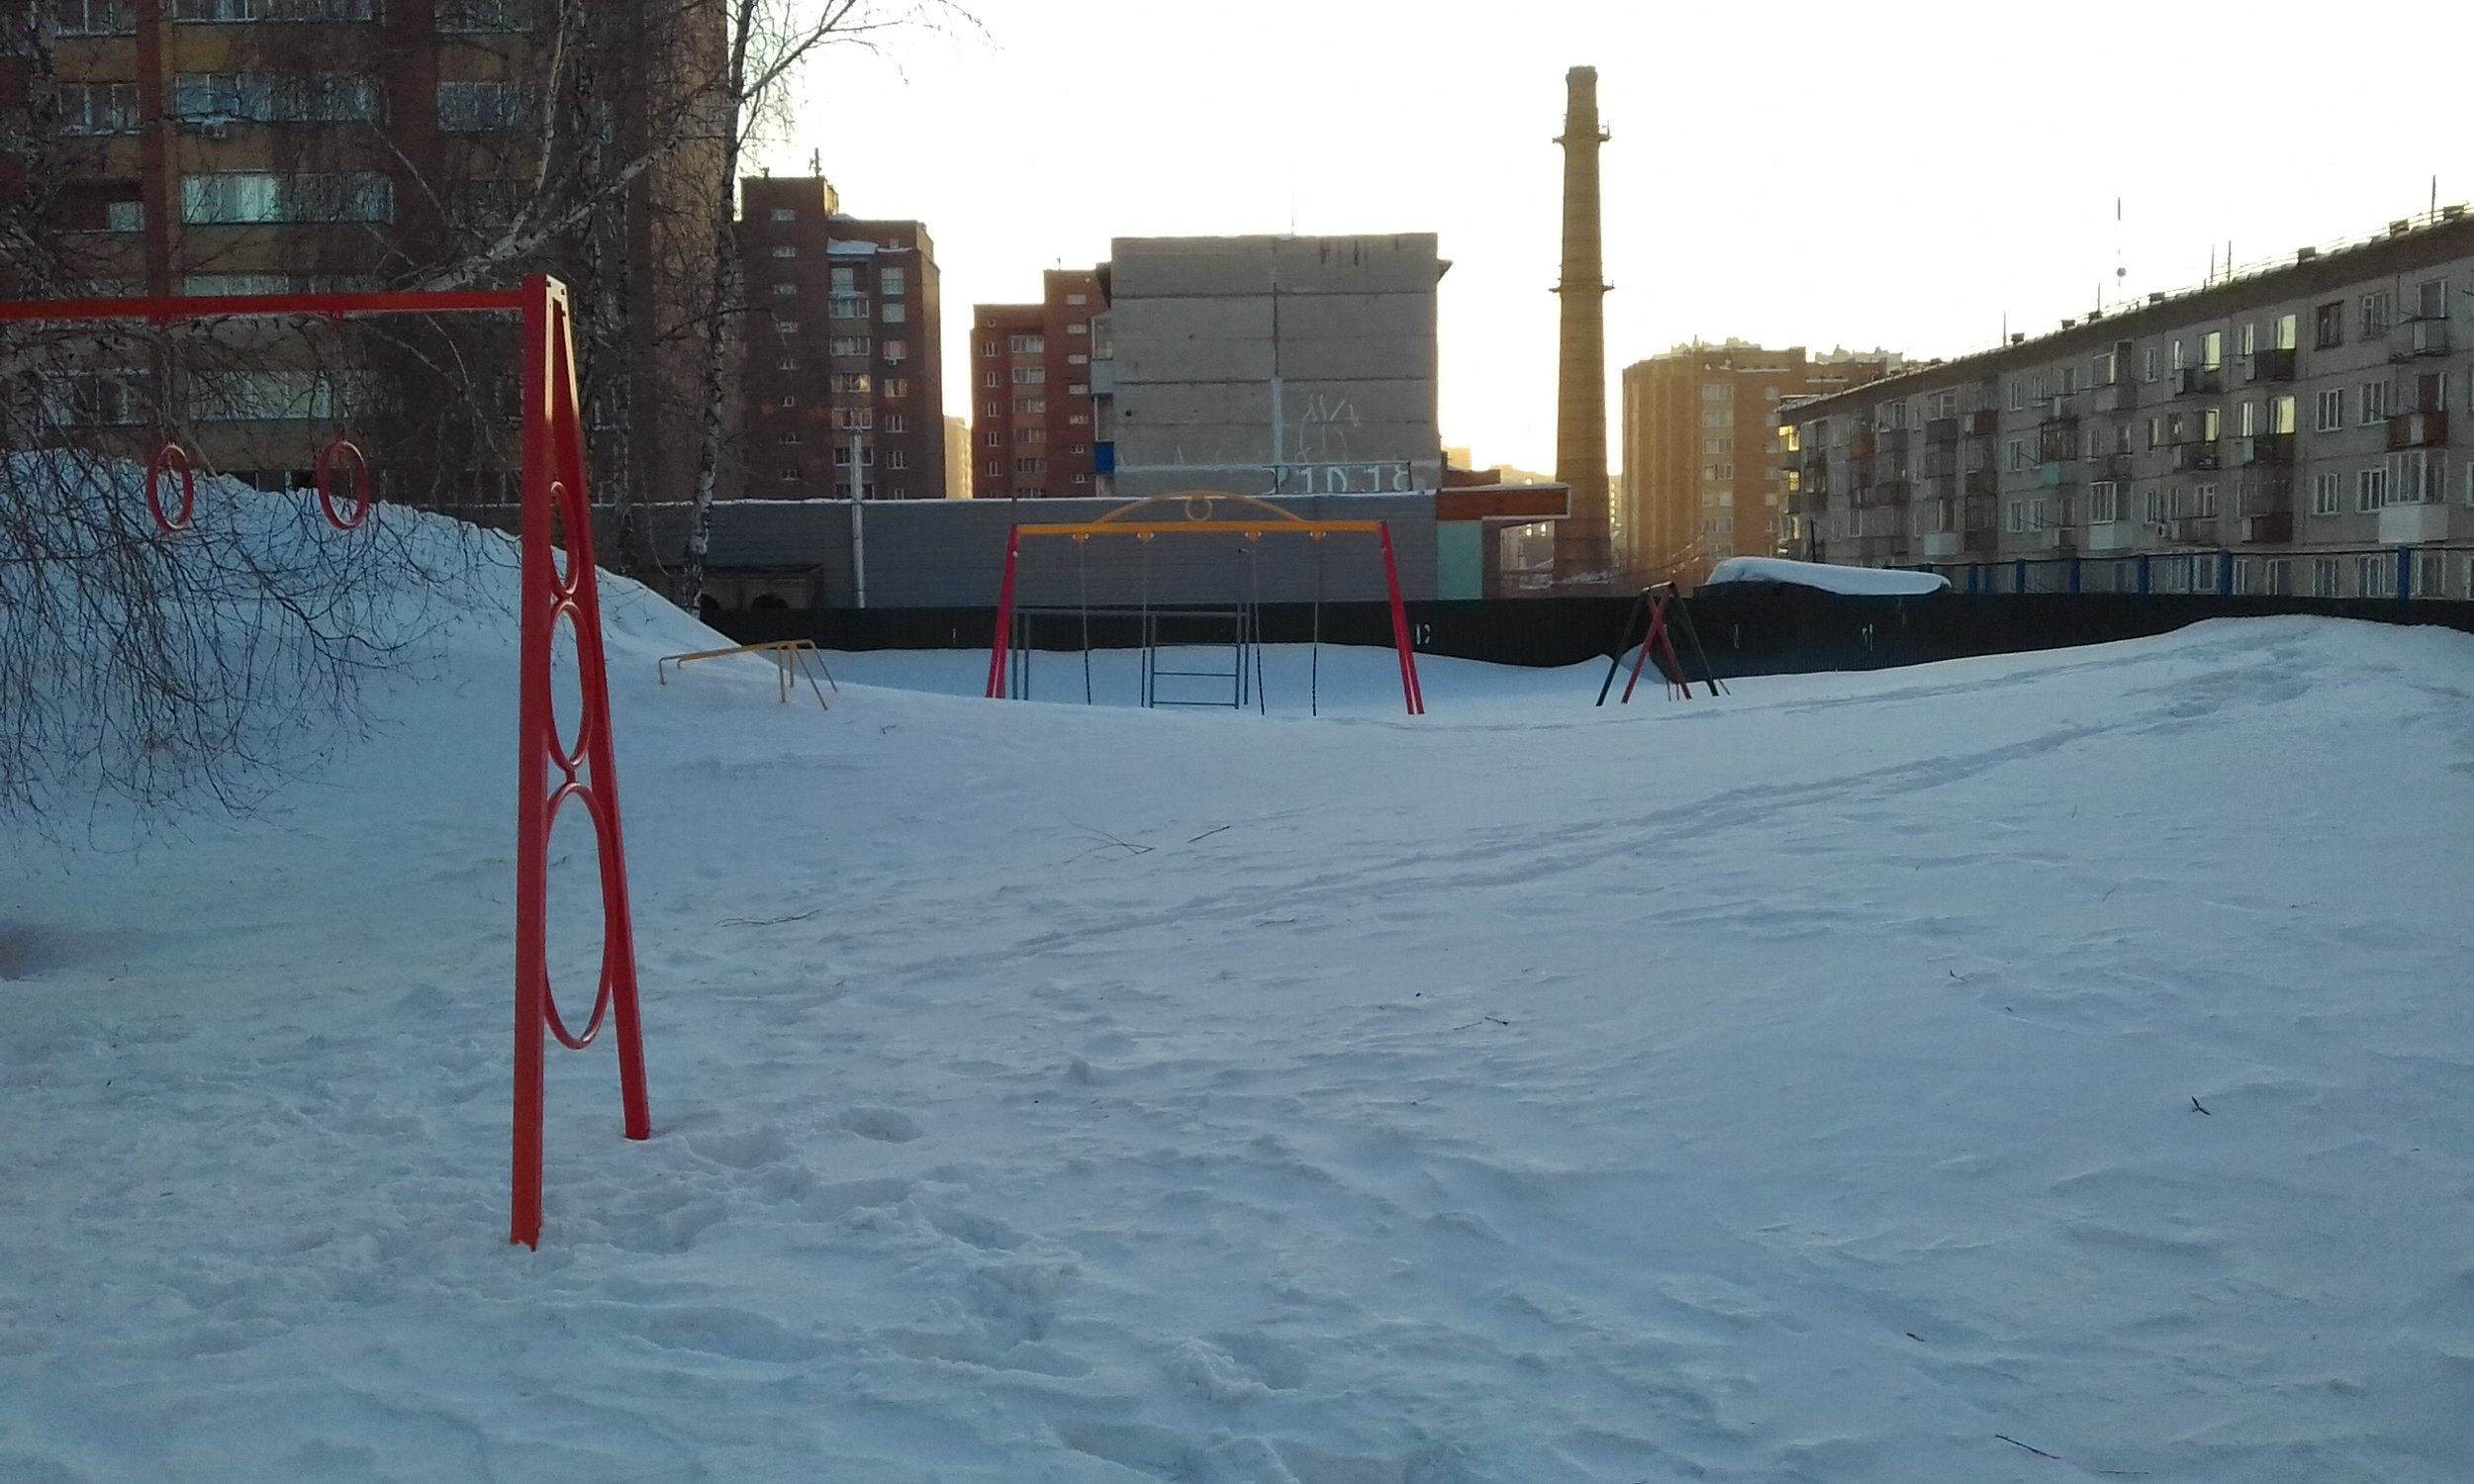 Winter might be reaching its technical end, but snow mountains still abound. And when it does finally thaw, we'll have one soggy city. (That's a full playground under the snow, by the way.)